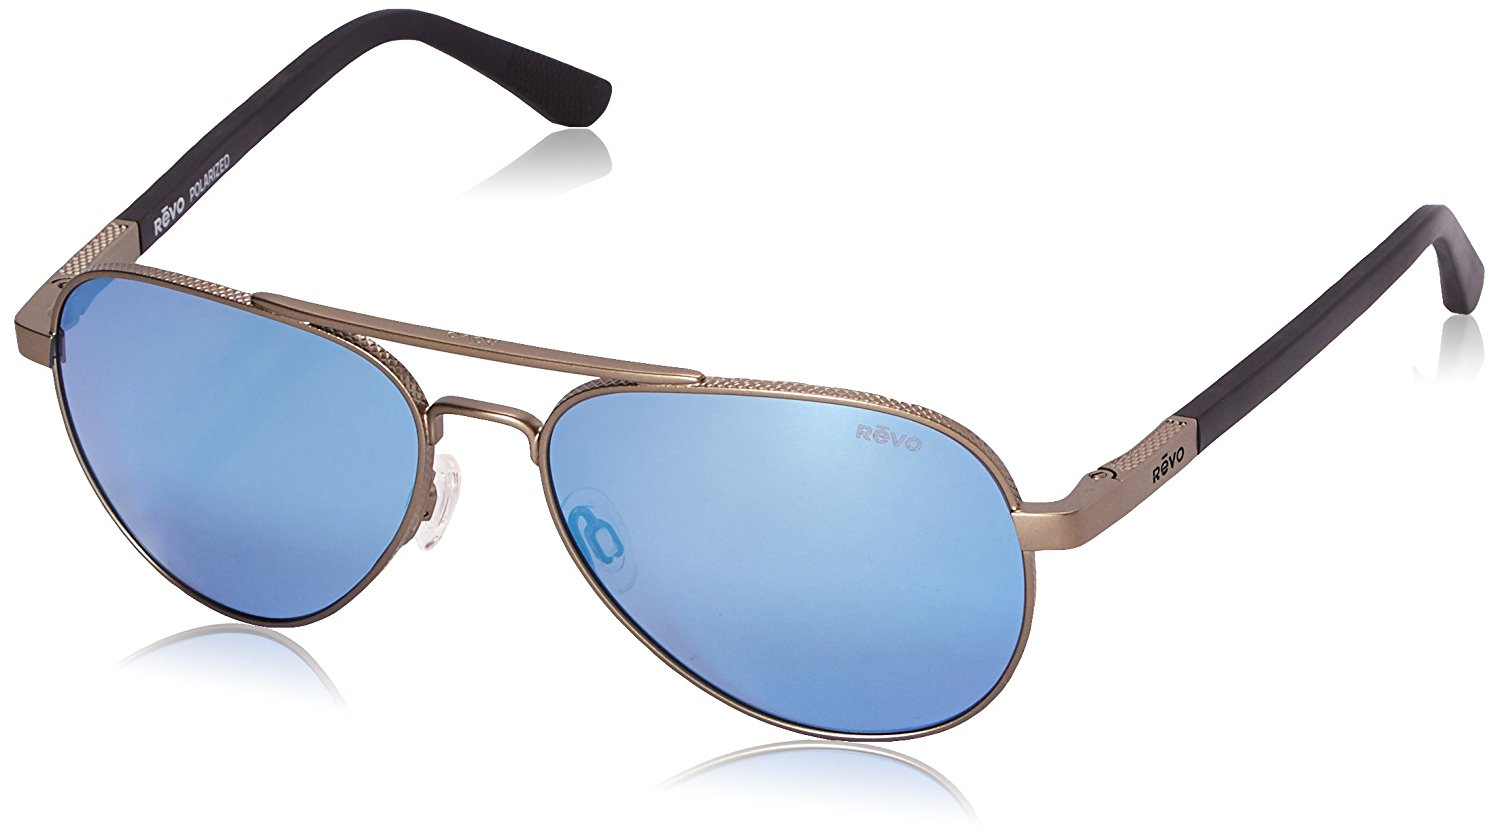 5a4e334f812 Revo Raconteur RE 1011 00 GBL Polarized Aviator Sunglasses with Crystal  Lenses